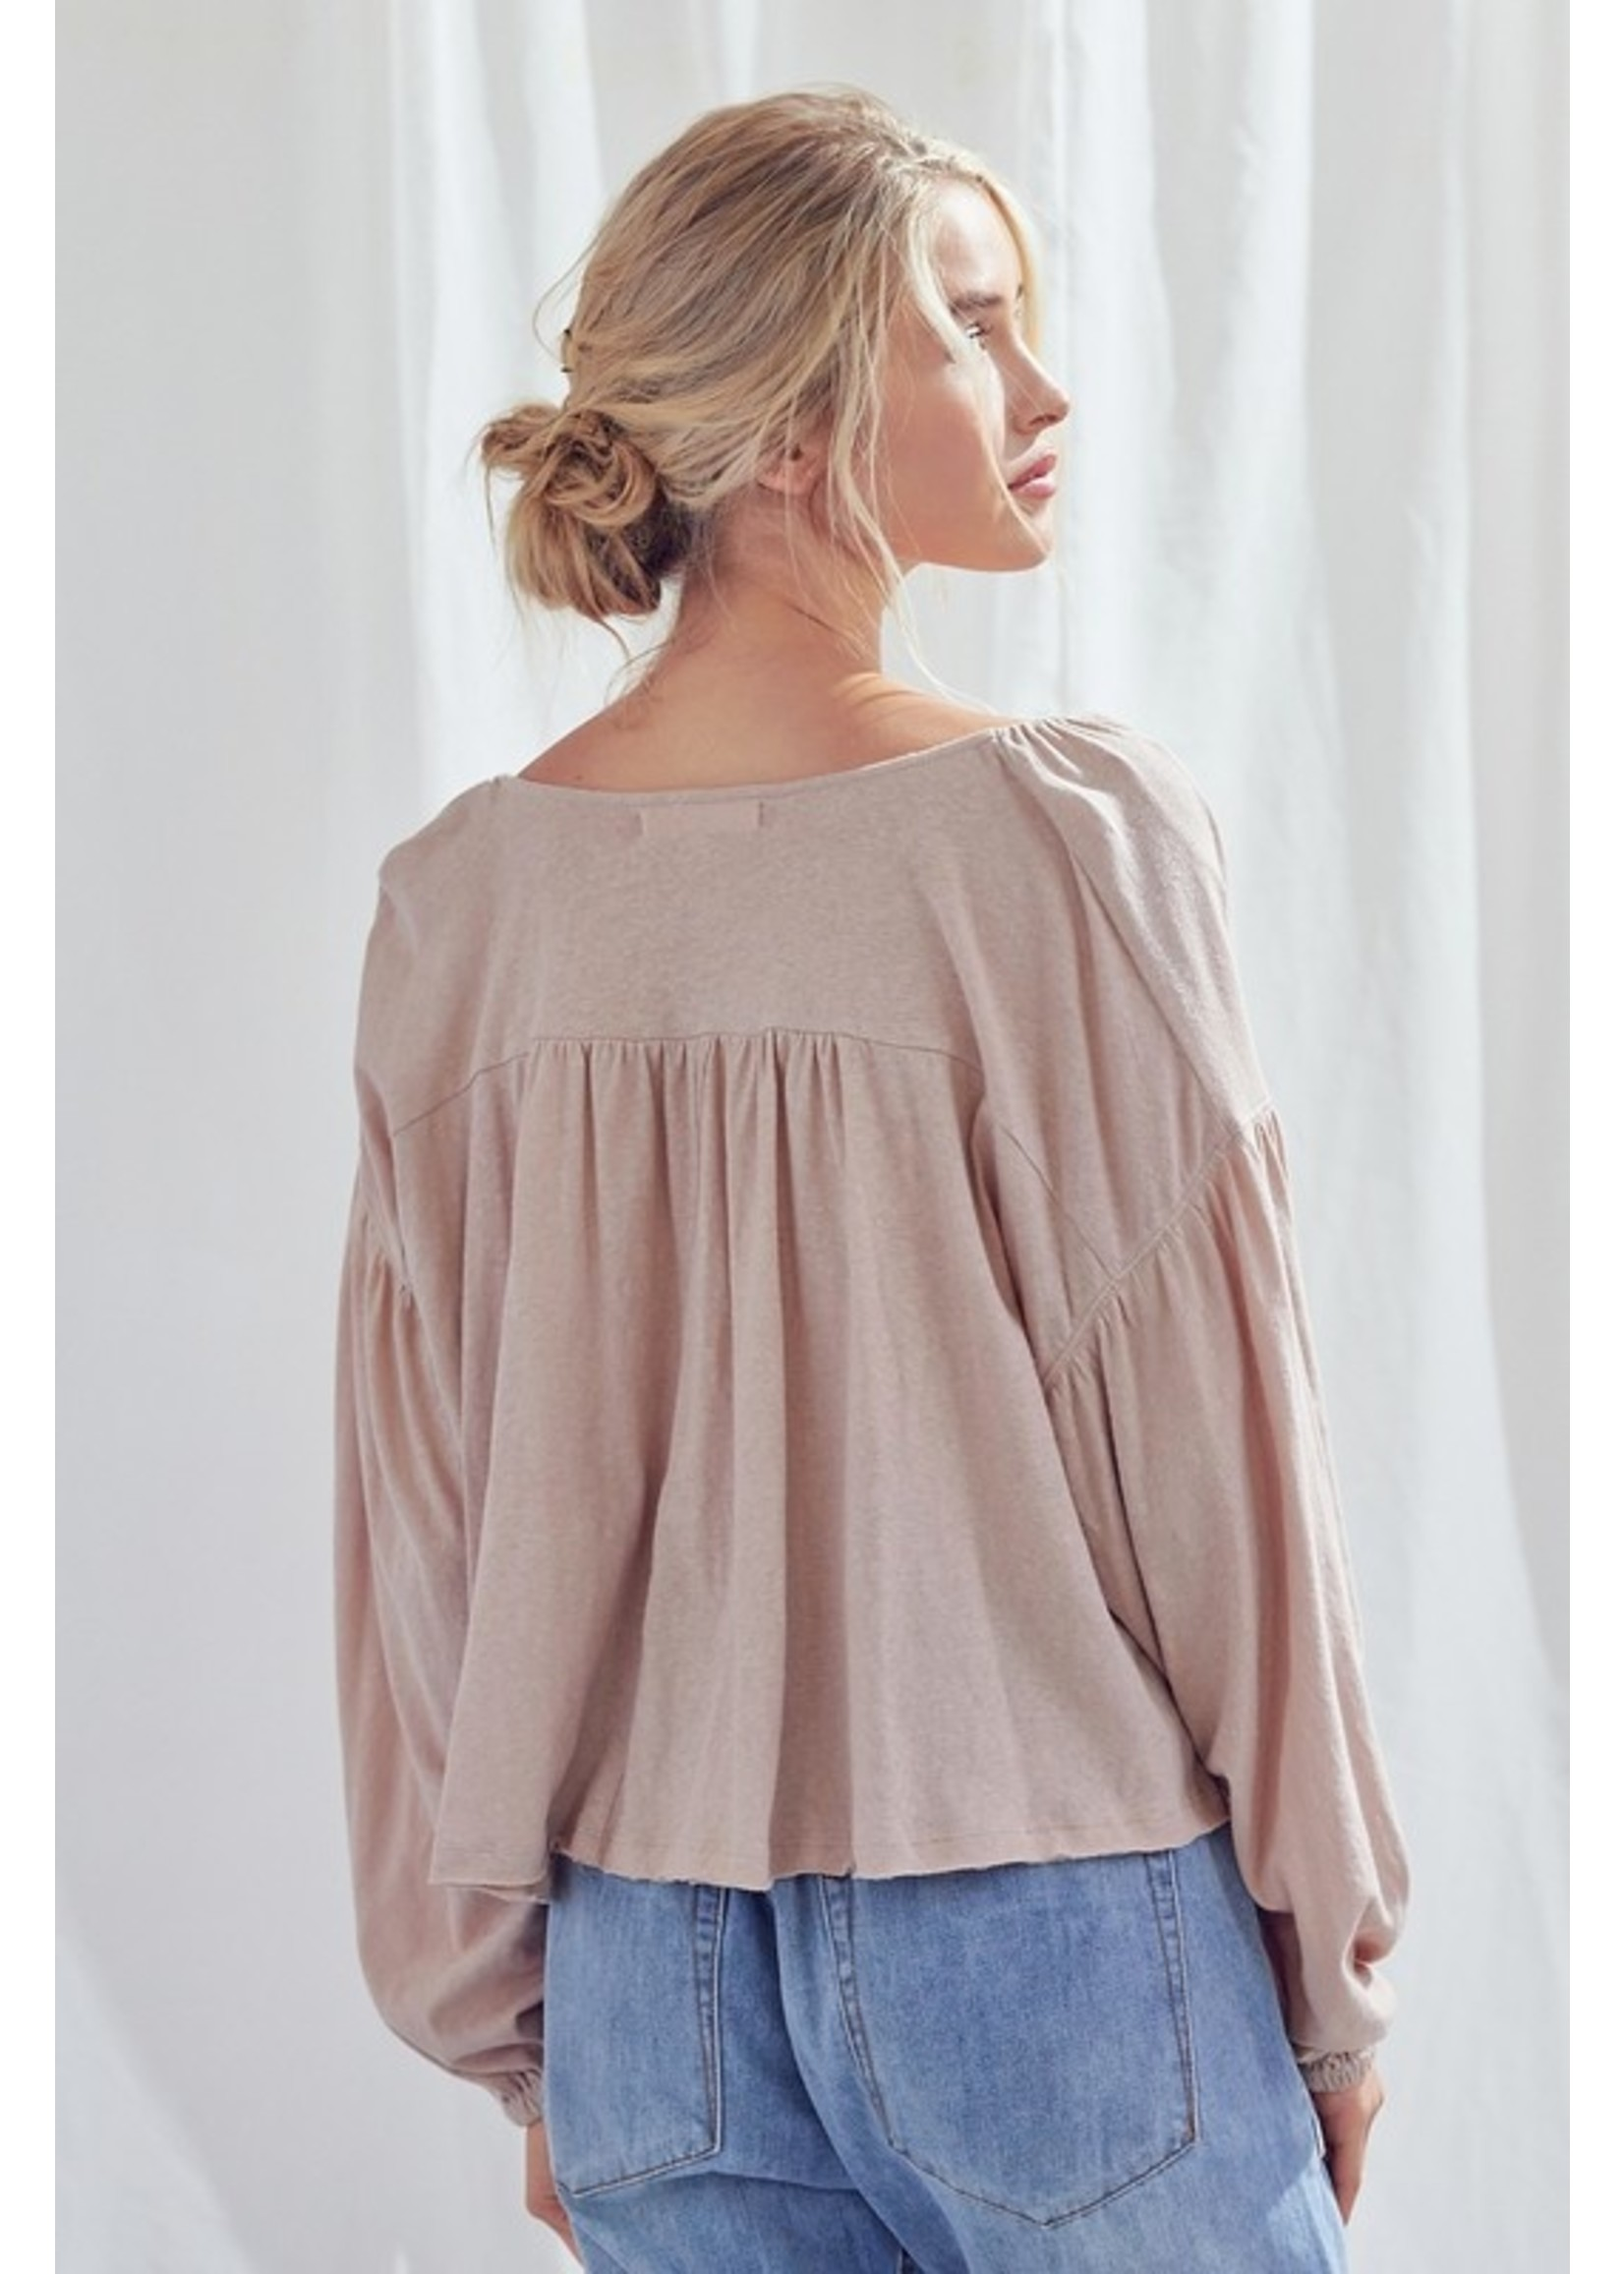 Mustard Seed V-Neck Shirred Top - S18577